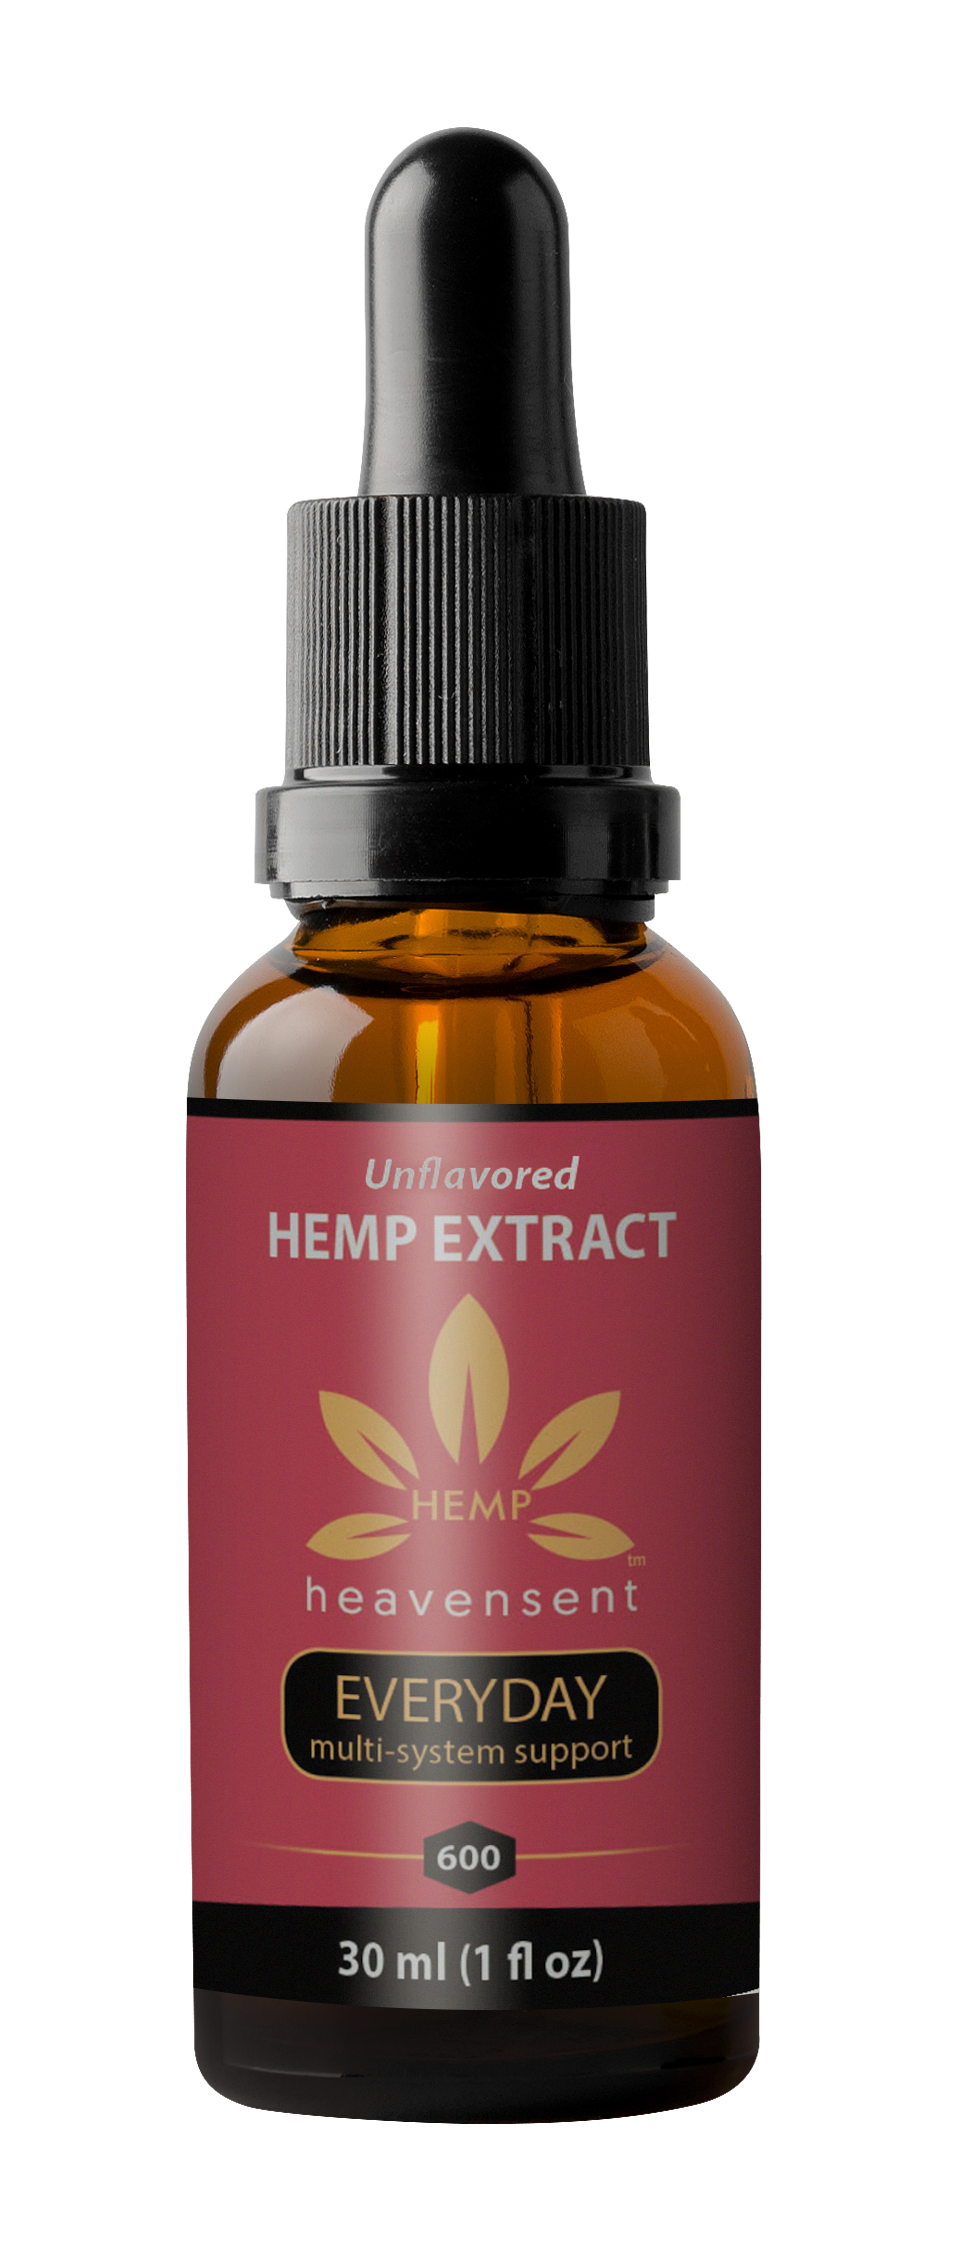 Unflavored_Hemp Extract bottle.png